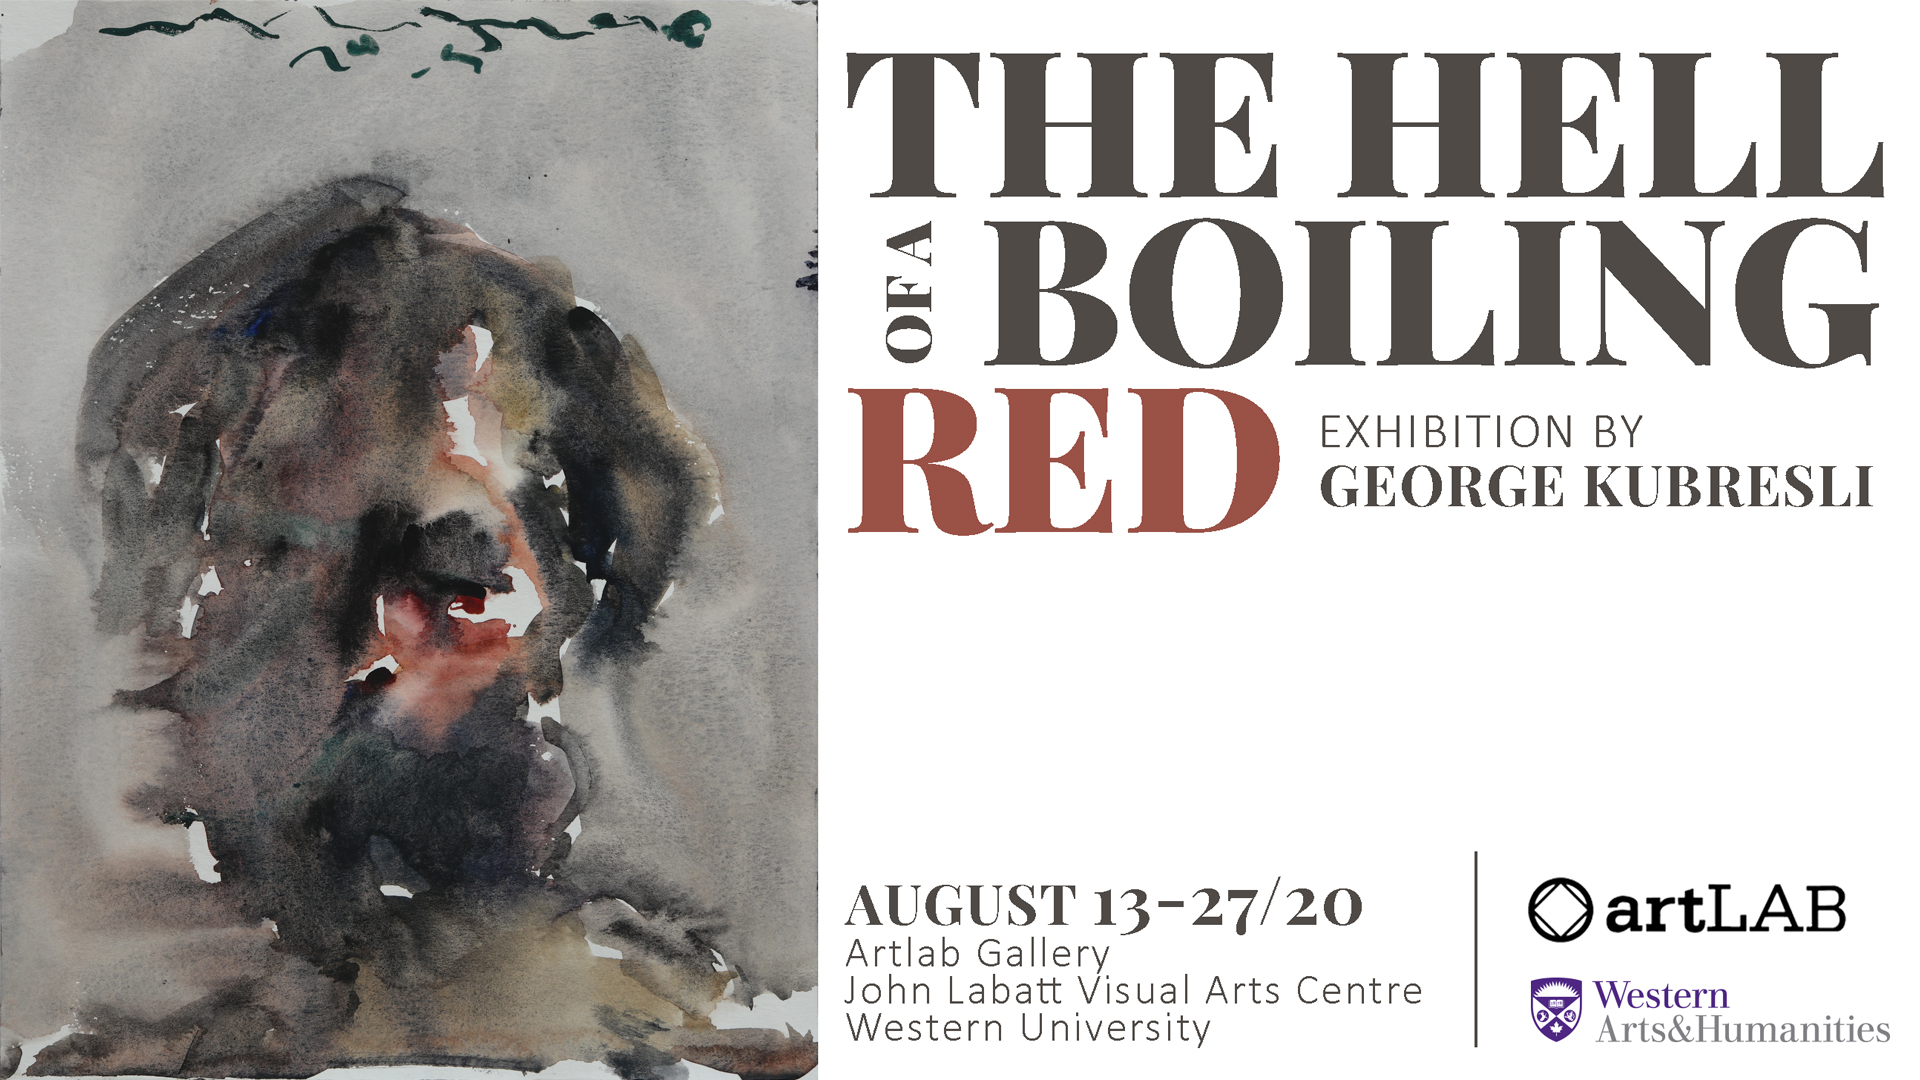 George Kubresli: The Hell of a Boiling Red August 13 - August 27, by appointment only.